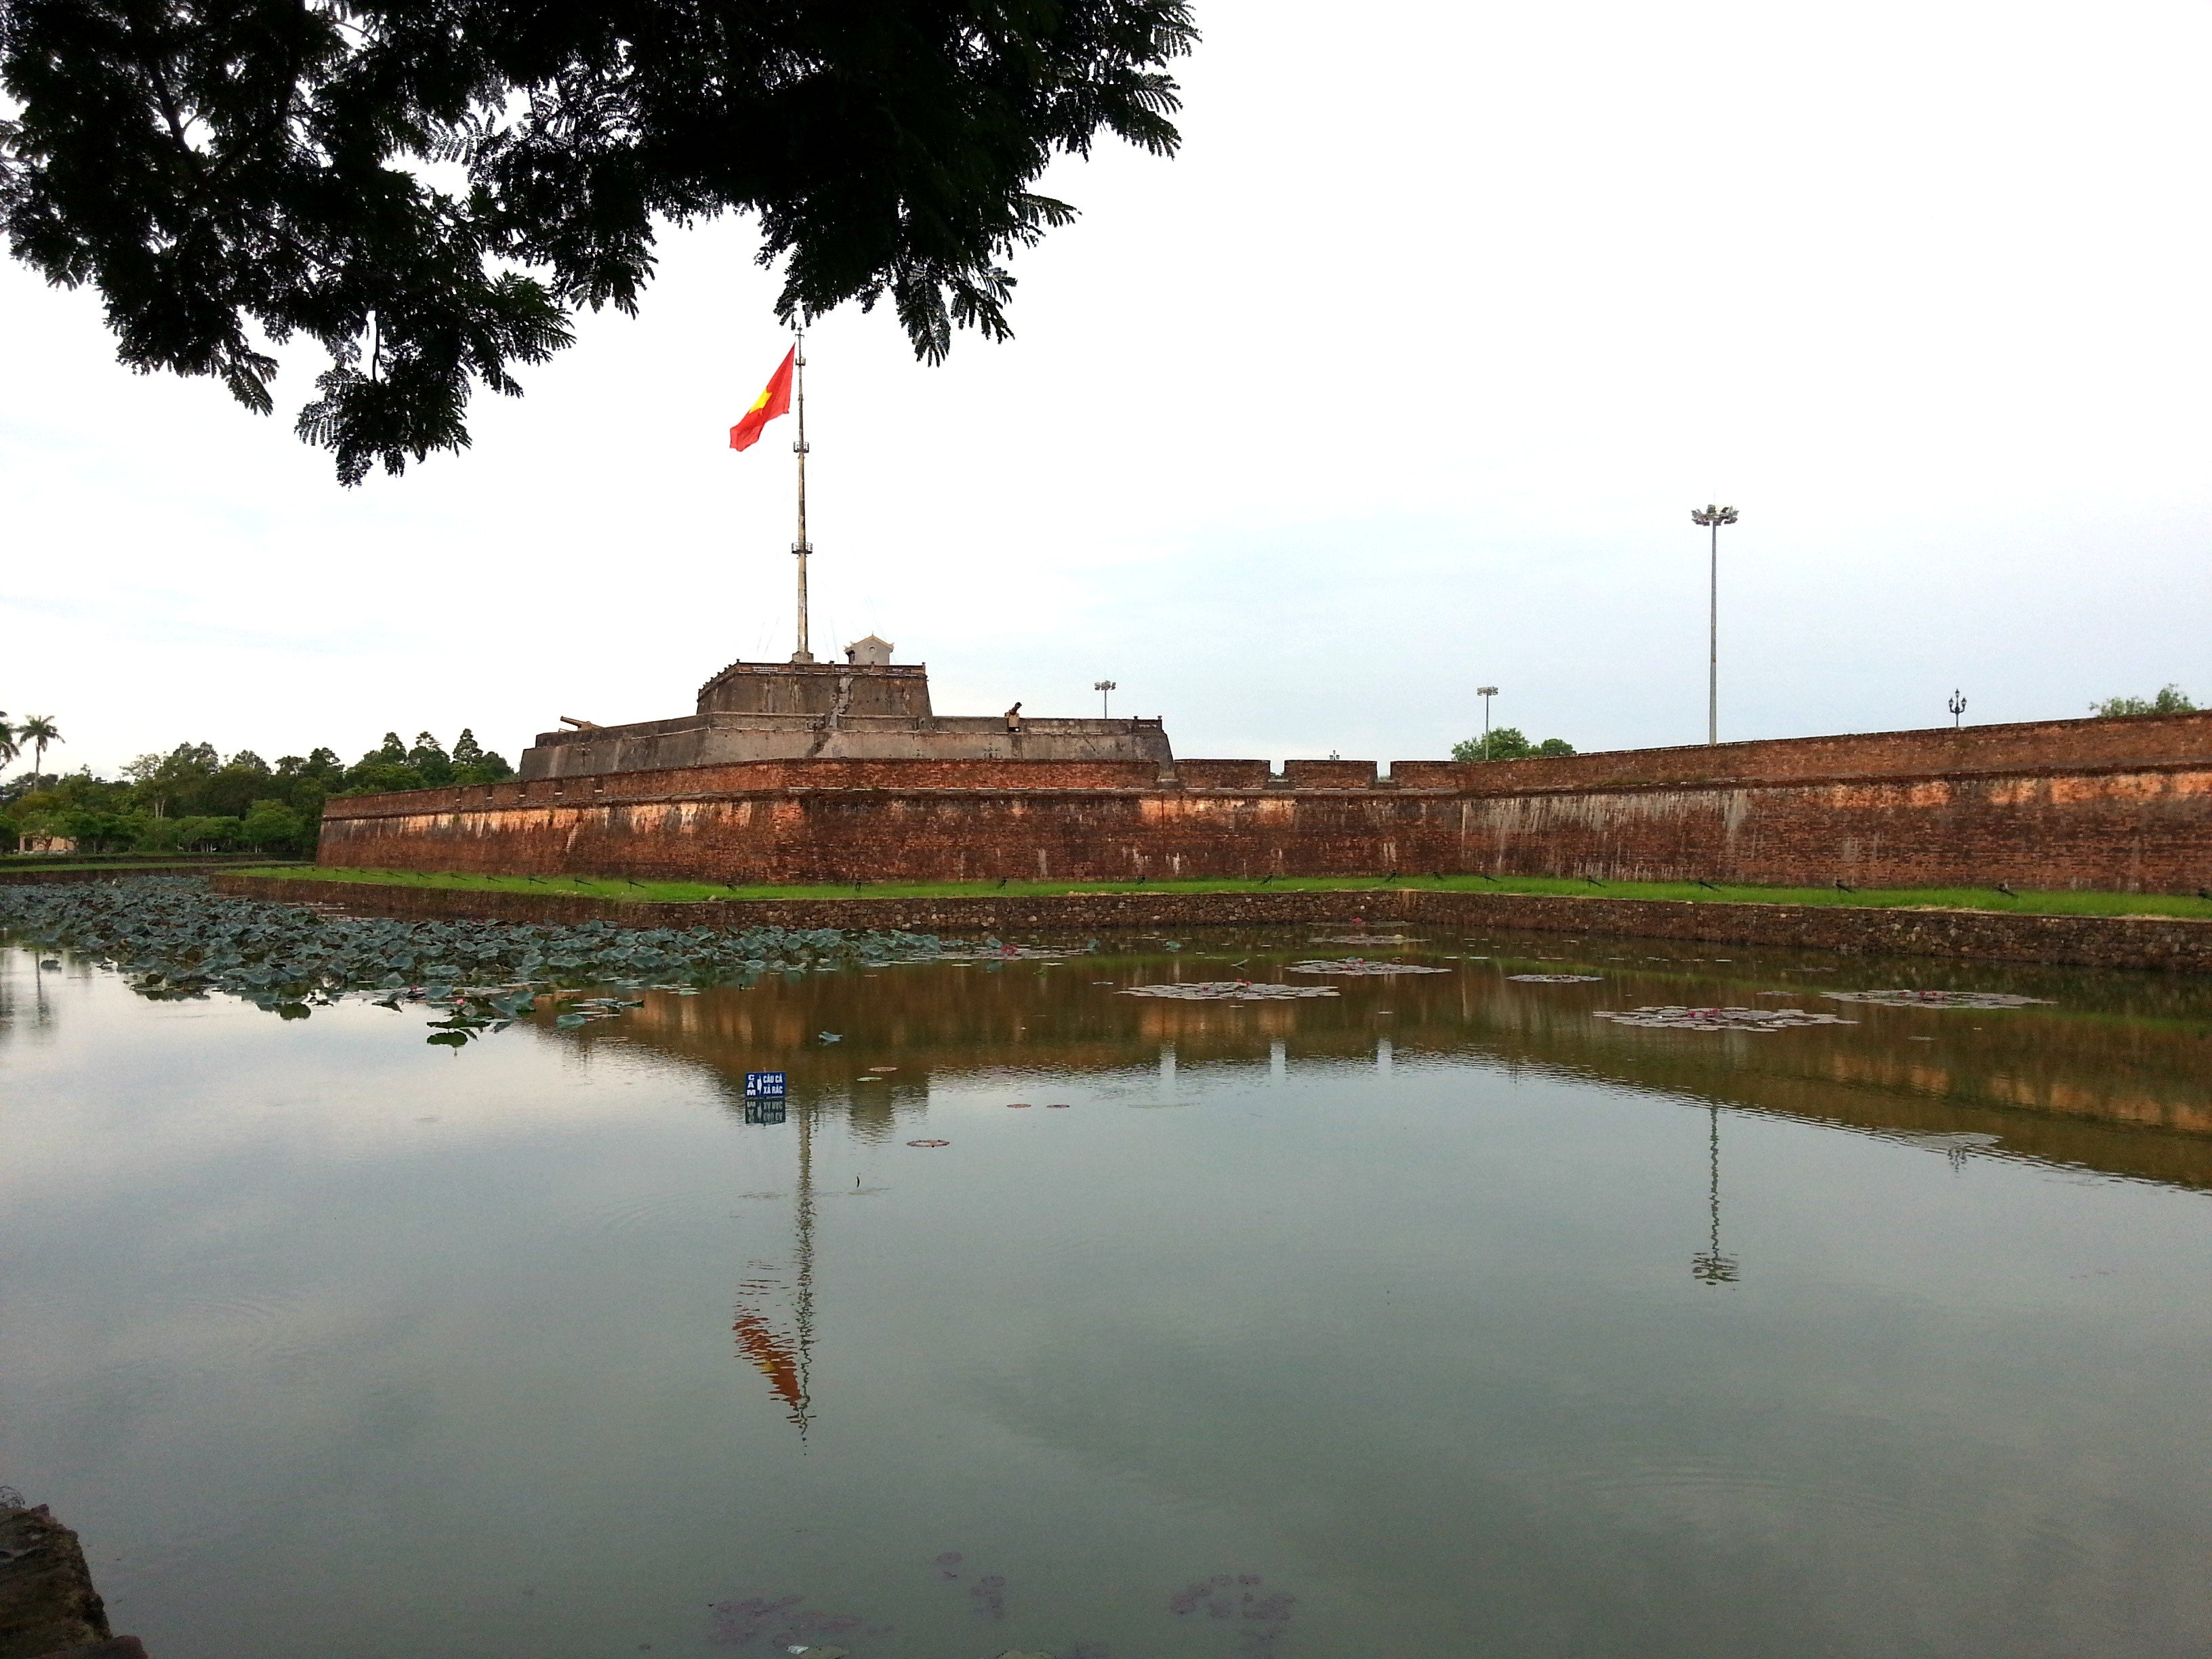 Flag pole and walls around the Imperial Citadel